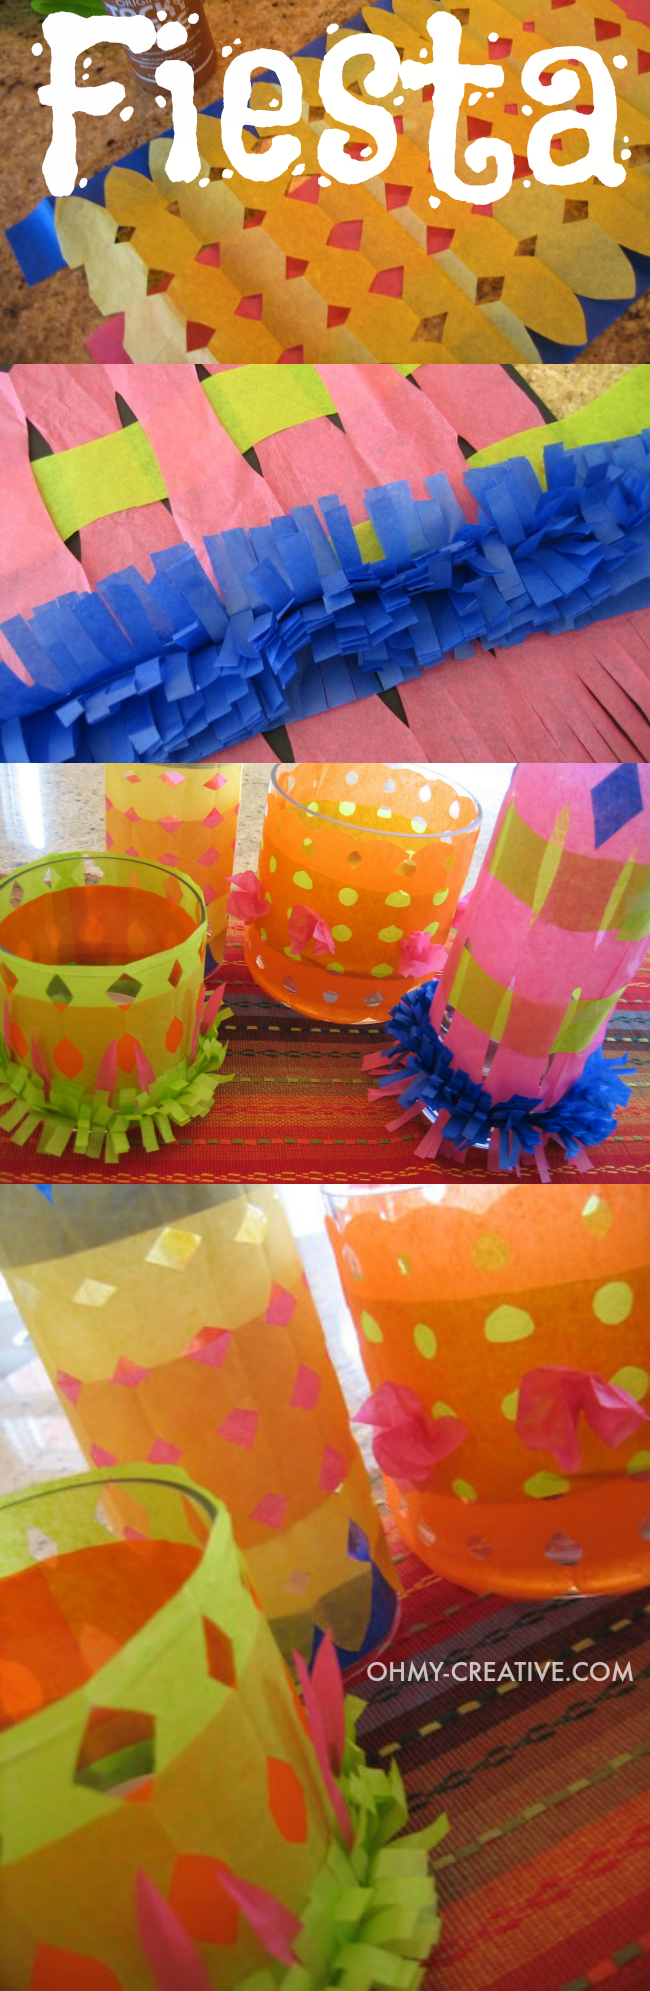 These Fiesta candle holders make a great centerpiece for Cinco de Mayo or a Mexican Fiesta. The are cheap to make using tissue paper and something fun for the kids to make  |  OHMY-CREATIVE.COM